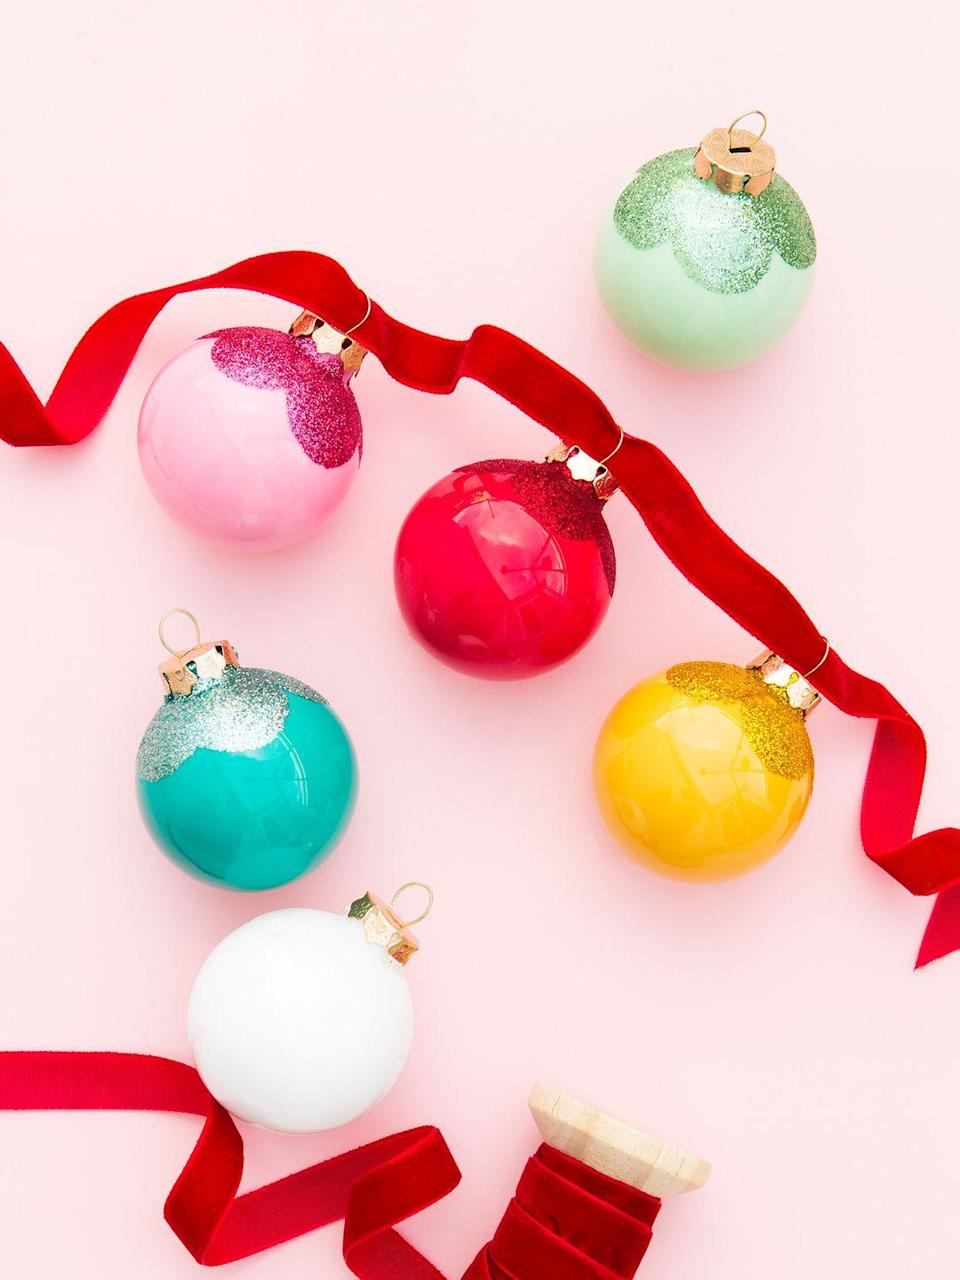 """<p>Short on time? While the scalloped glitter embellishment looks extra sweet, you could still create a very pretty Christmas garland with just colored ornaments and velvet ribbon. </p><p><a href=""""https://sarahhearts.com/diy-glitter-scallop-ornaments/"""" rel=""""nofollow noopener"""" target=""""_blank"""" data-ylk=""""slk:Get the tutorial."""" class=""""link rapid-noclick-resp"""">Get the tutorial.</a></p><p><a class=""""link rapid-noclick-resp"""" href=""""https://www.amazon.com/Darice-2-Piece-Glass-Balls-2610-48/dp/B002Z1WG0O?tag=syn-yahoo-20&ascsubtag=%5Bartid%7C10072.g.37499128%5Bsrc%7Cyahoo-us"""" rel=""""nofollow noopener"""" target=""""_blank"""" data-ylk=""""slk:SHOP ORNAMENTS"""">SHOP ORNAMENTS</a><br></p>"""